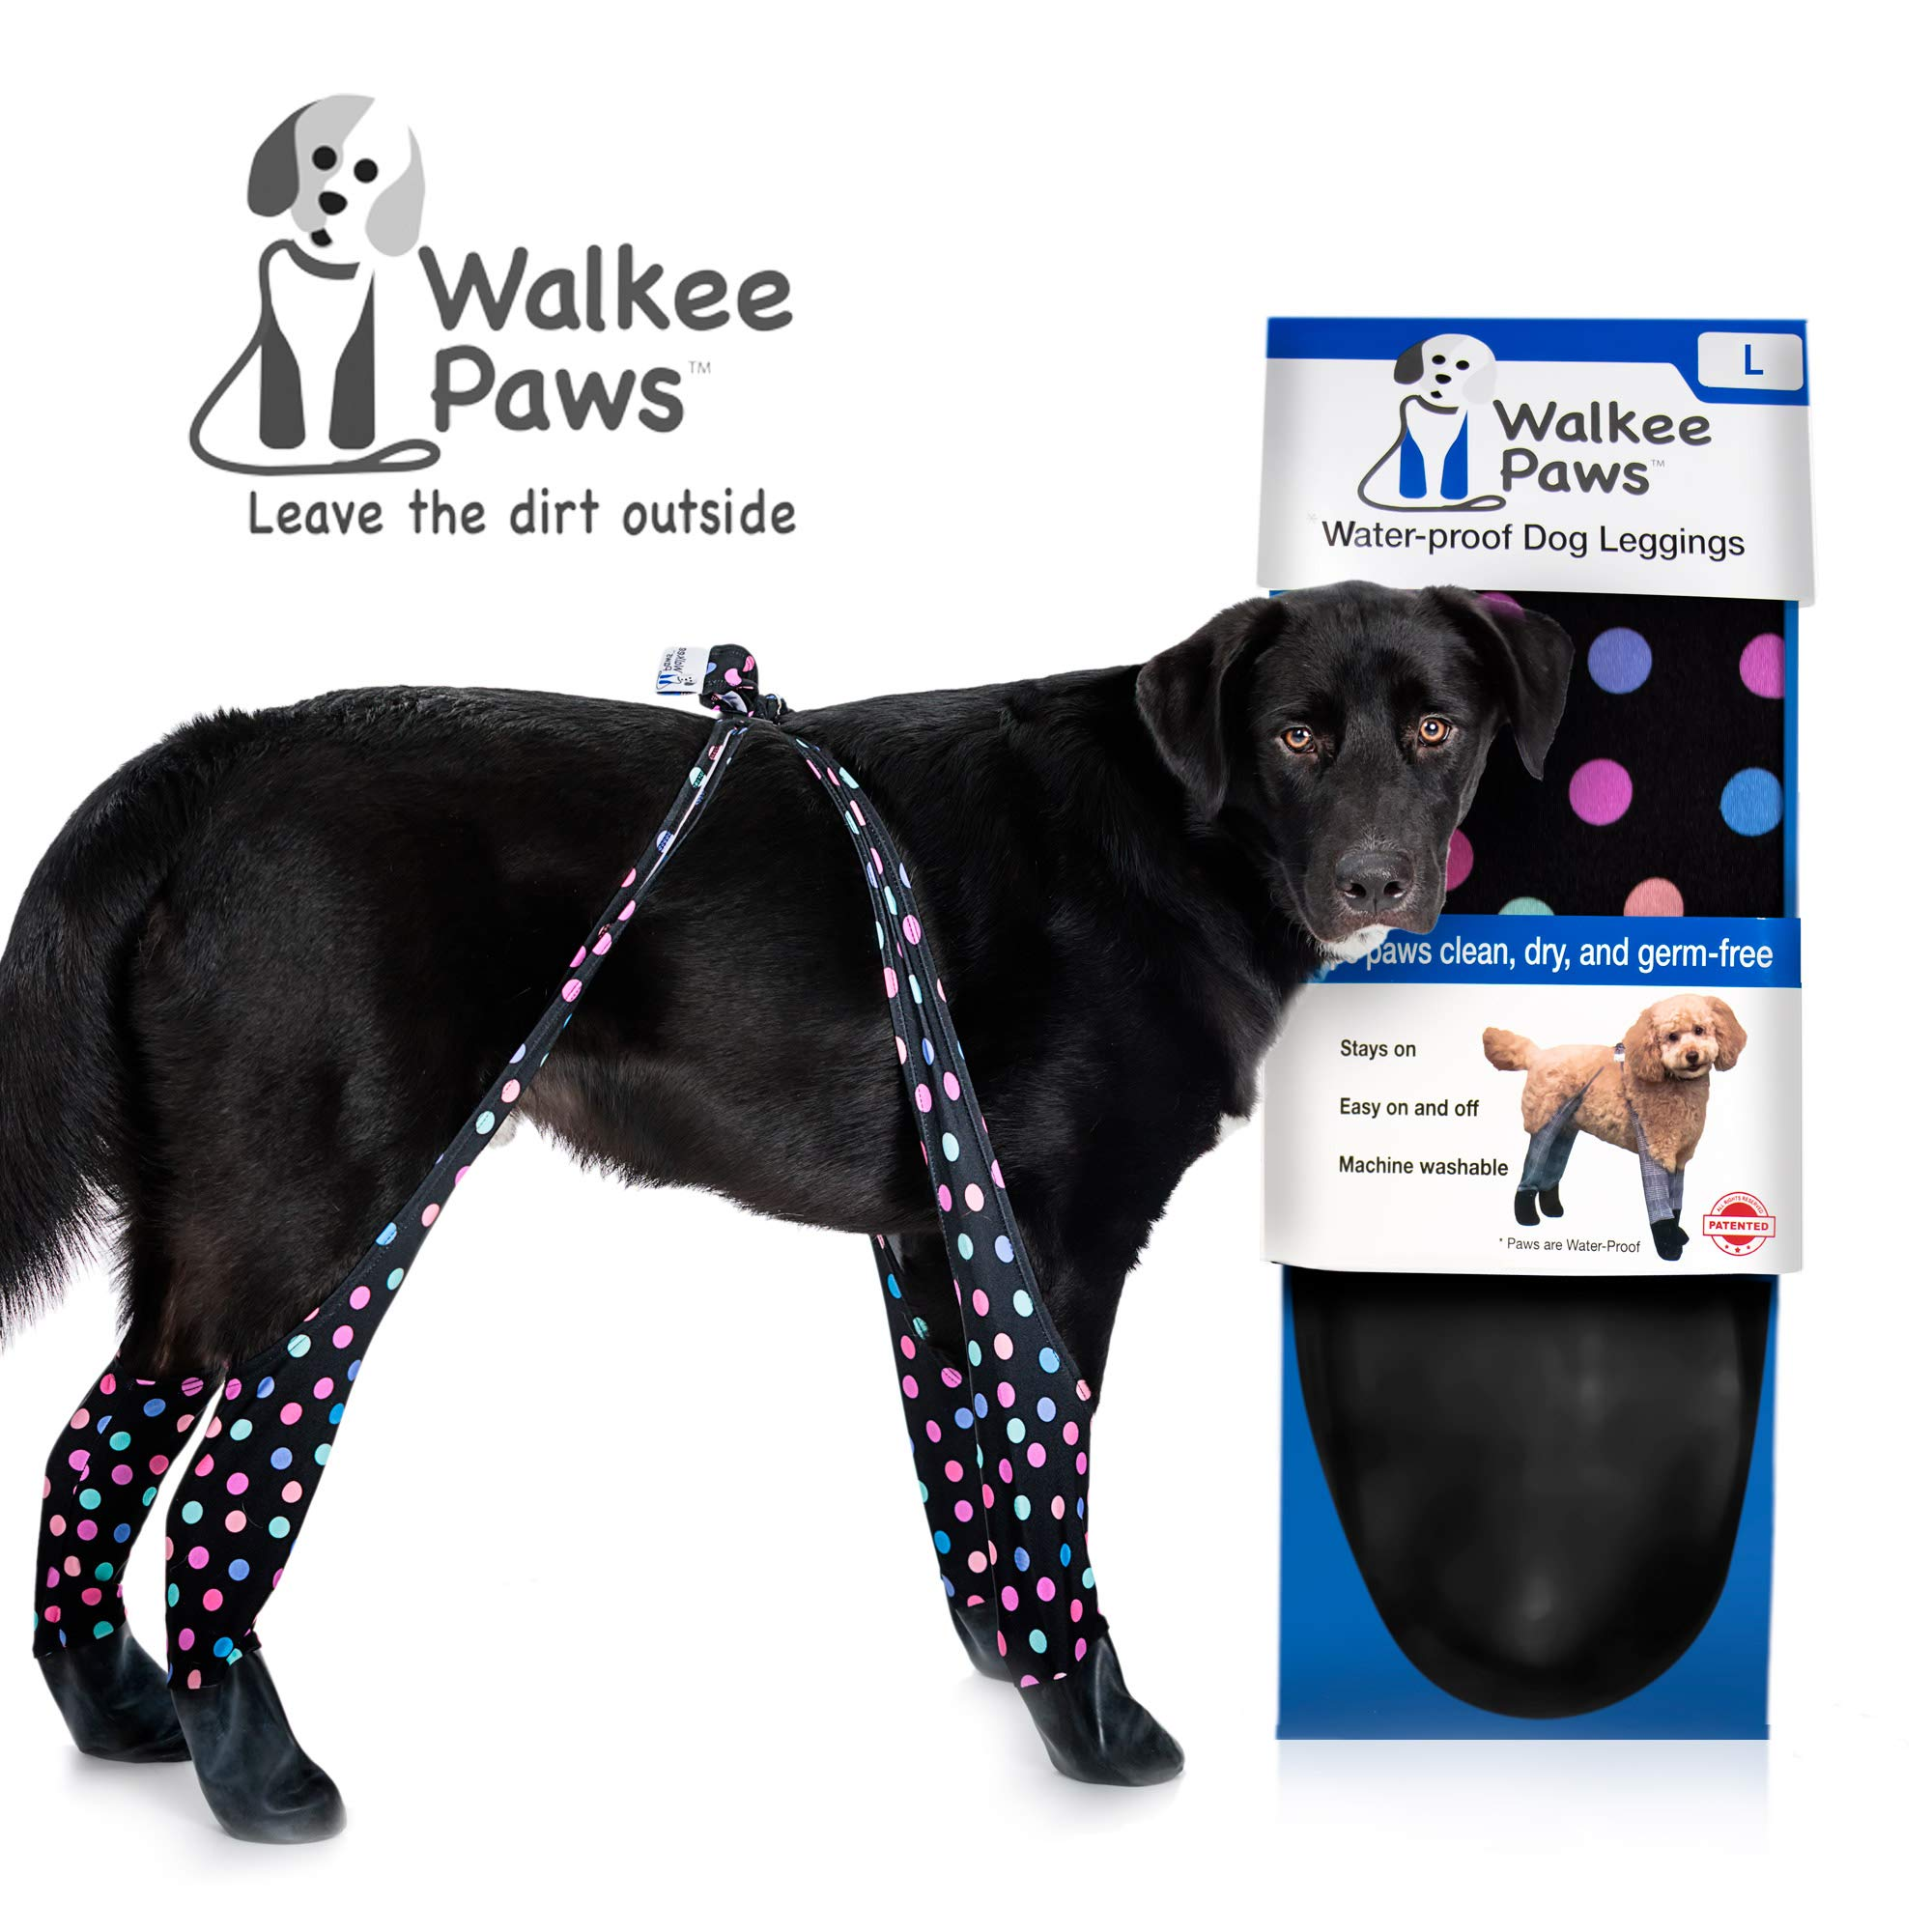 Walkee Paws Waterproof Dog Leggings - Keep Your Dog's Feet Clean and Dry Without The Hassle of Boots - Confetti Color (Large), WPCONL by Walkee Paws